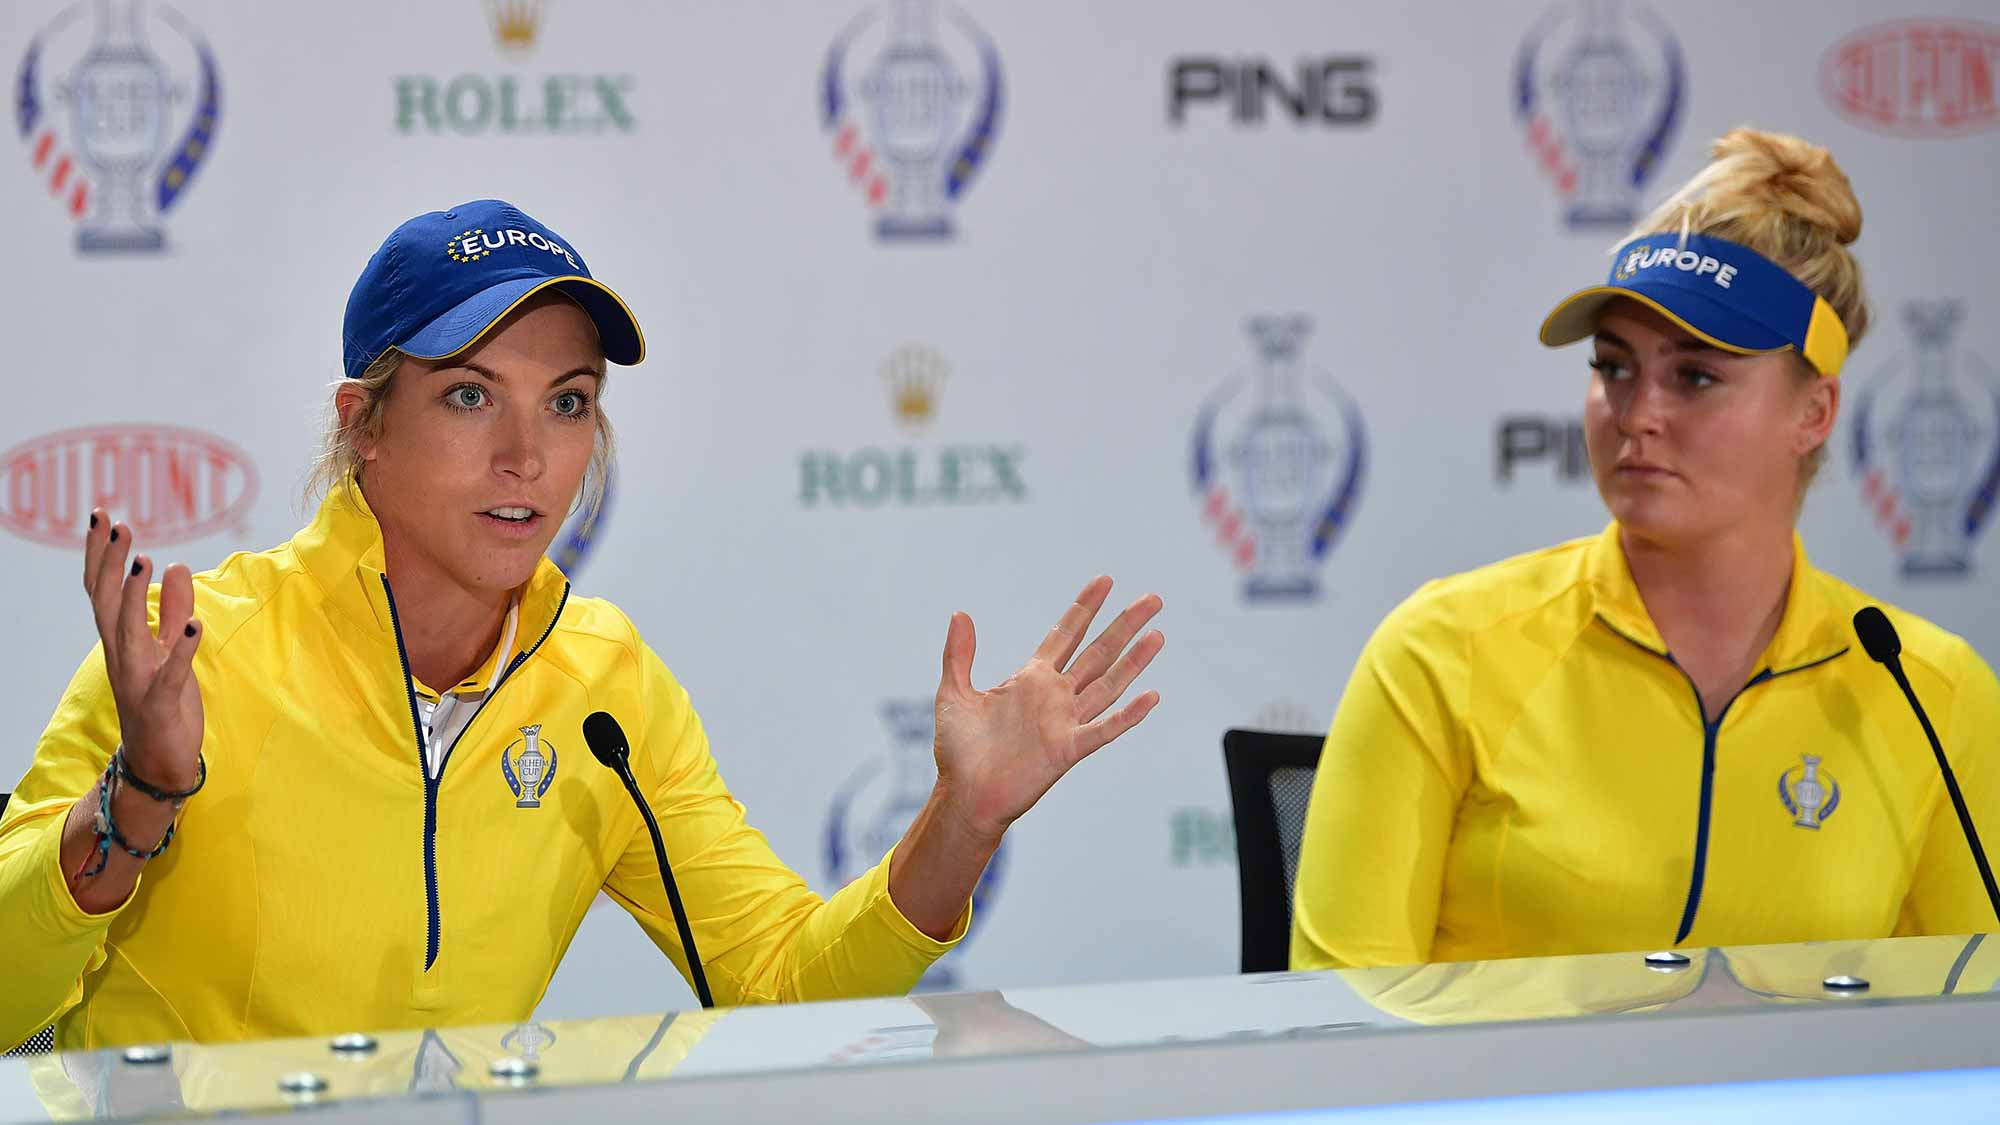 Mel Reid and Charley Hull of Team Europe talk to the media during a press conference for The Solheim Cup at the Des Moines Country Club